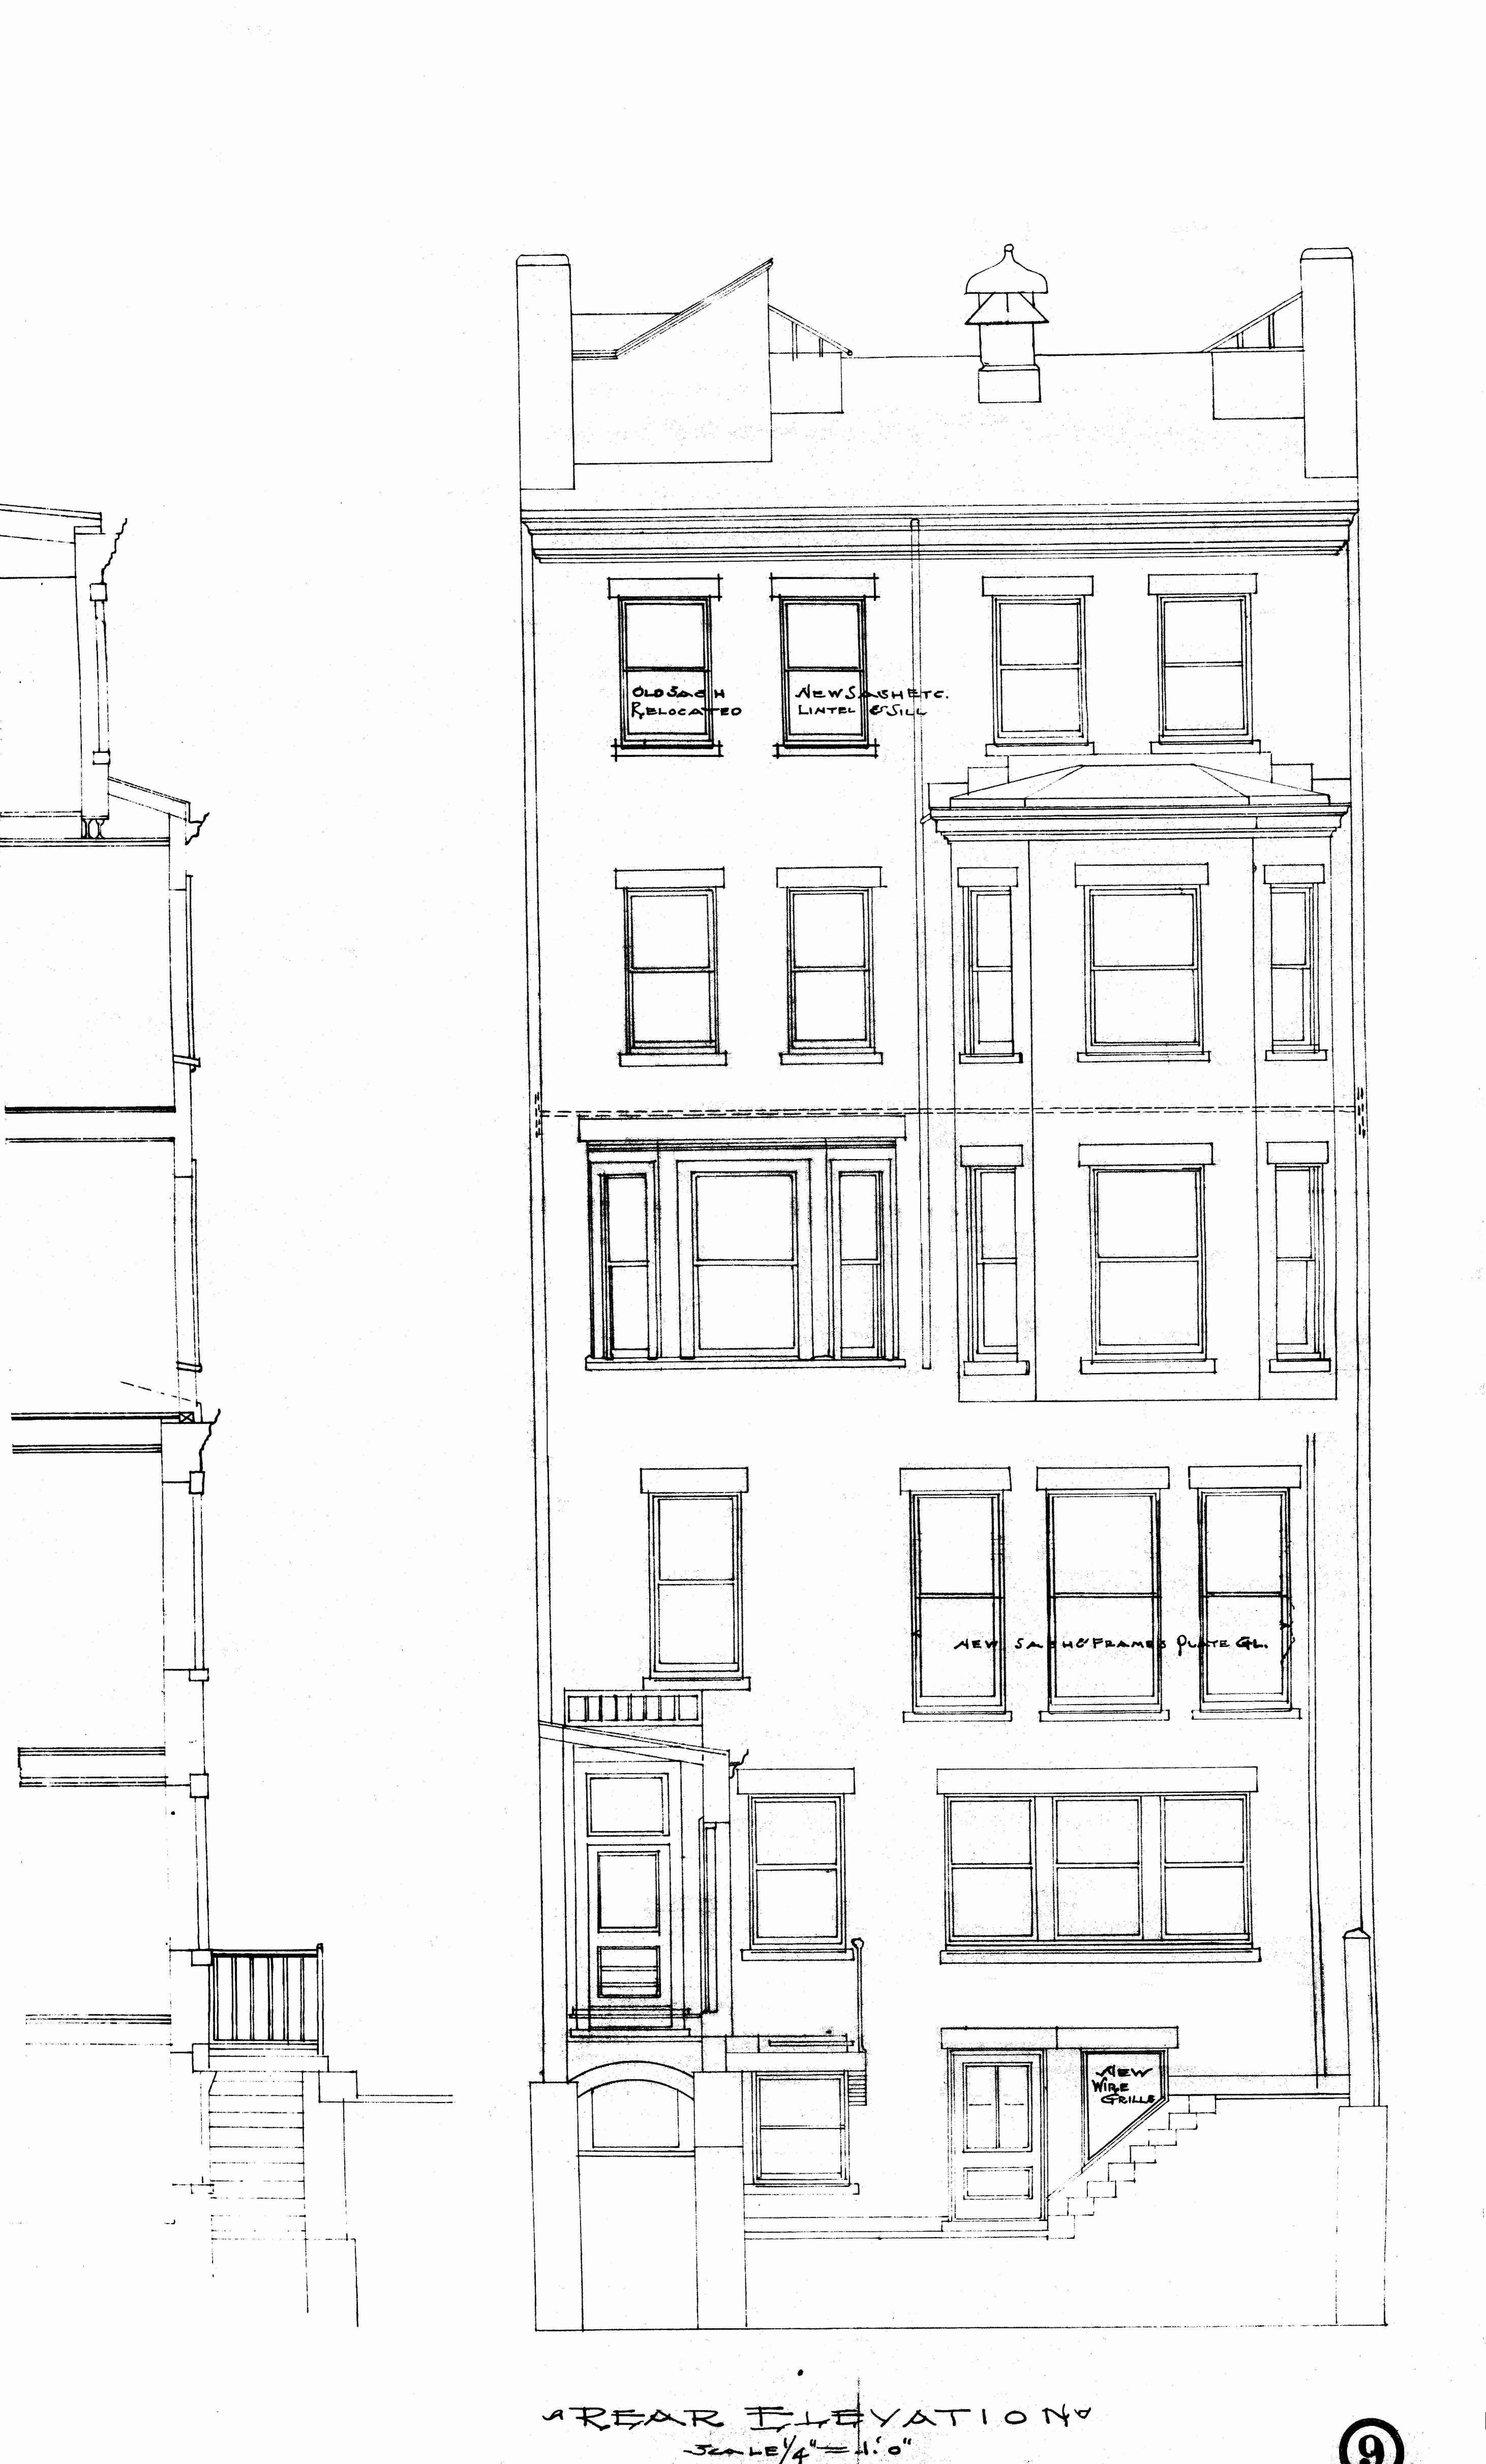 Architectural Plans: 347 Commonwealth